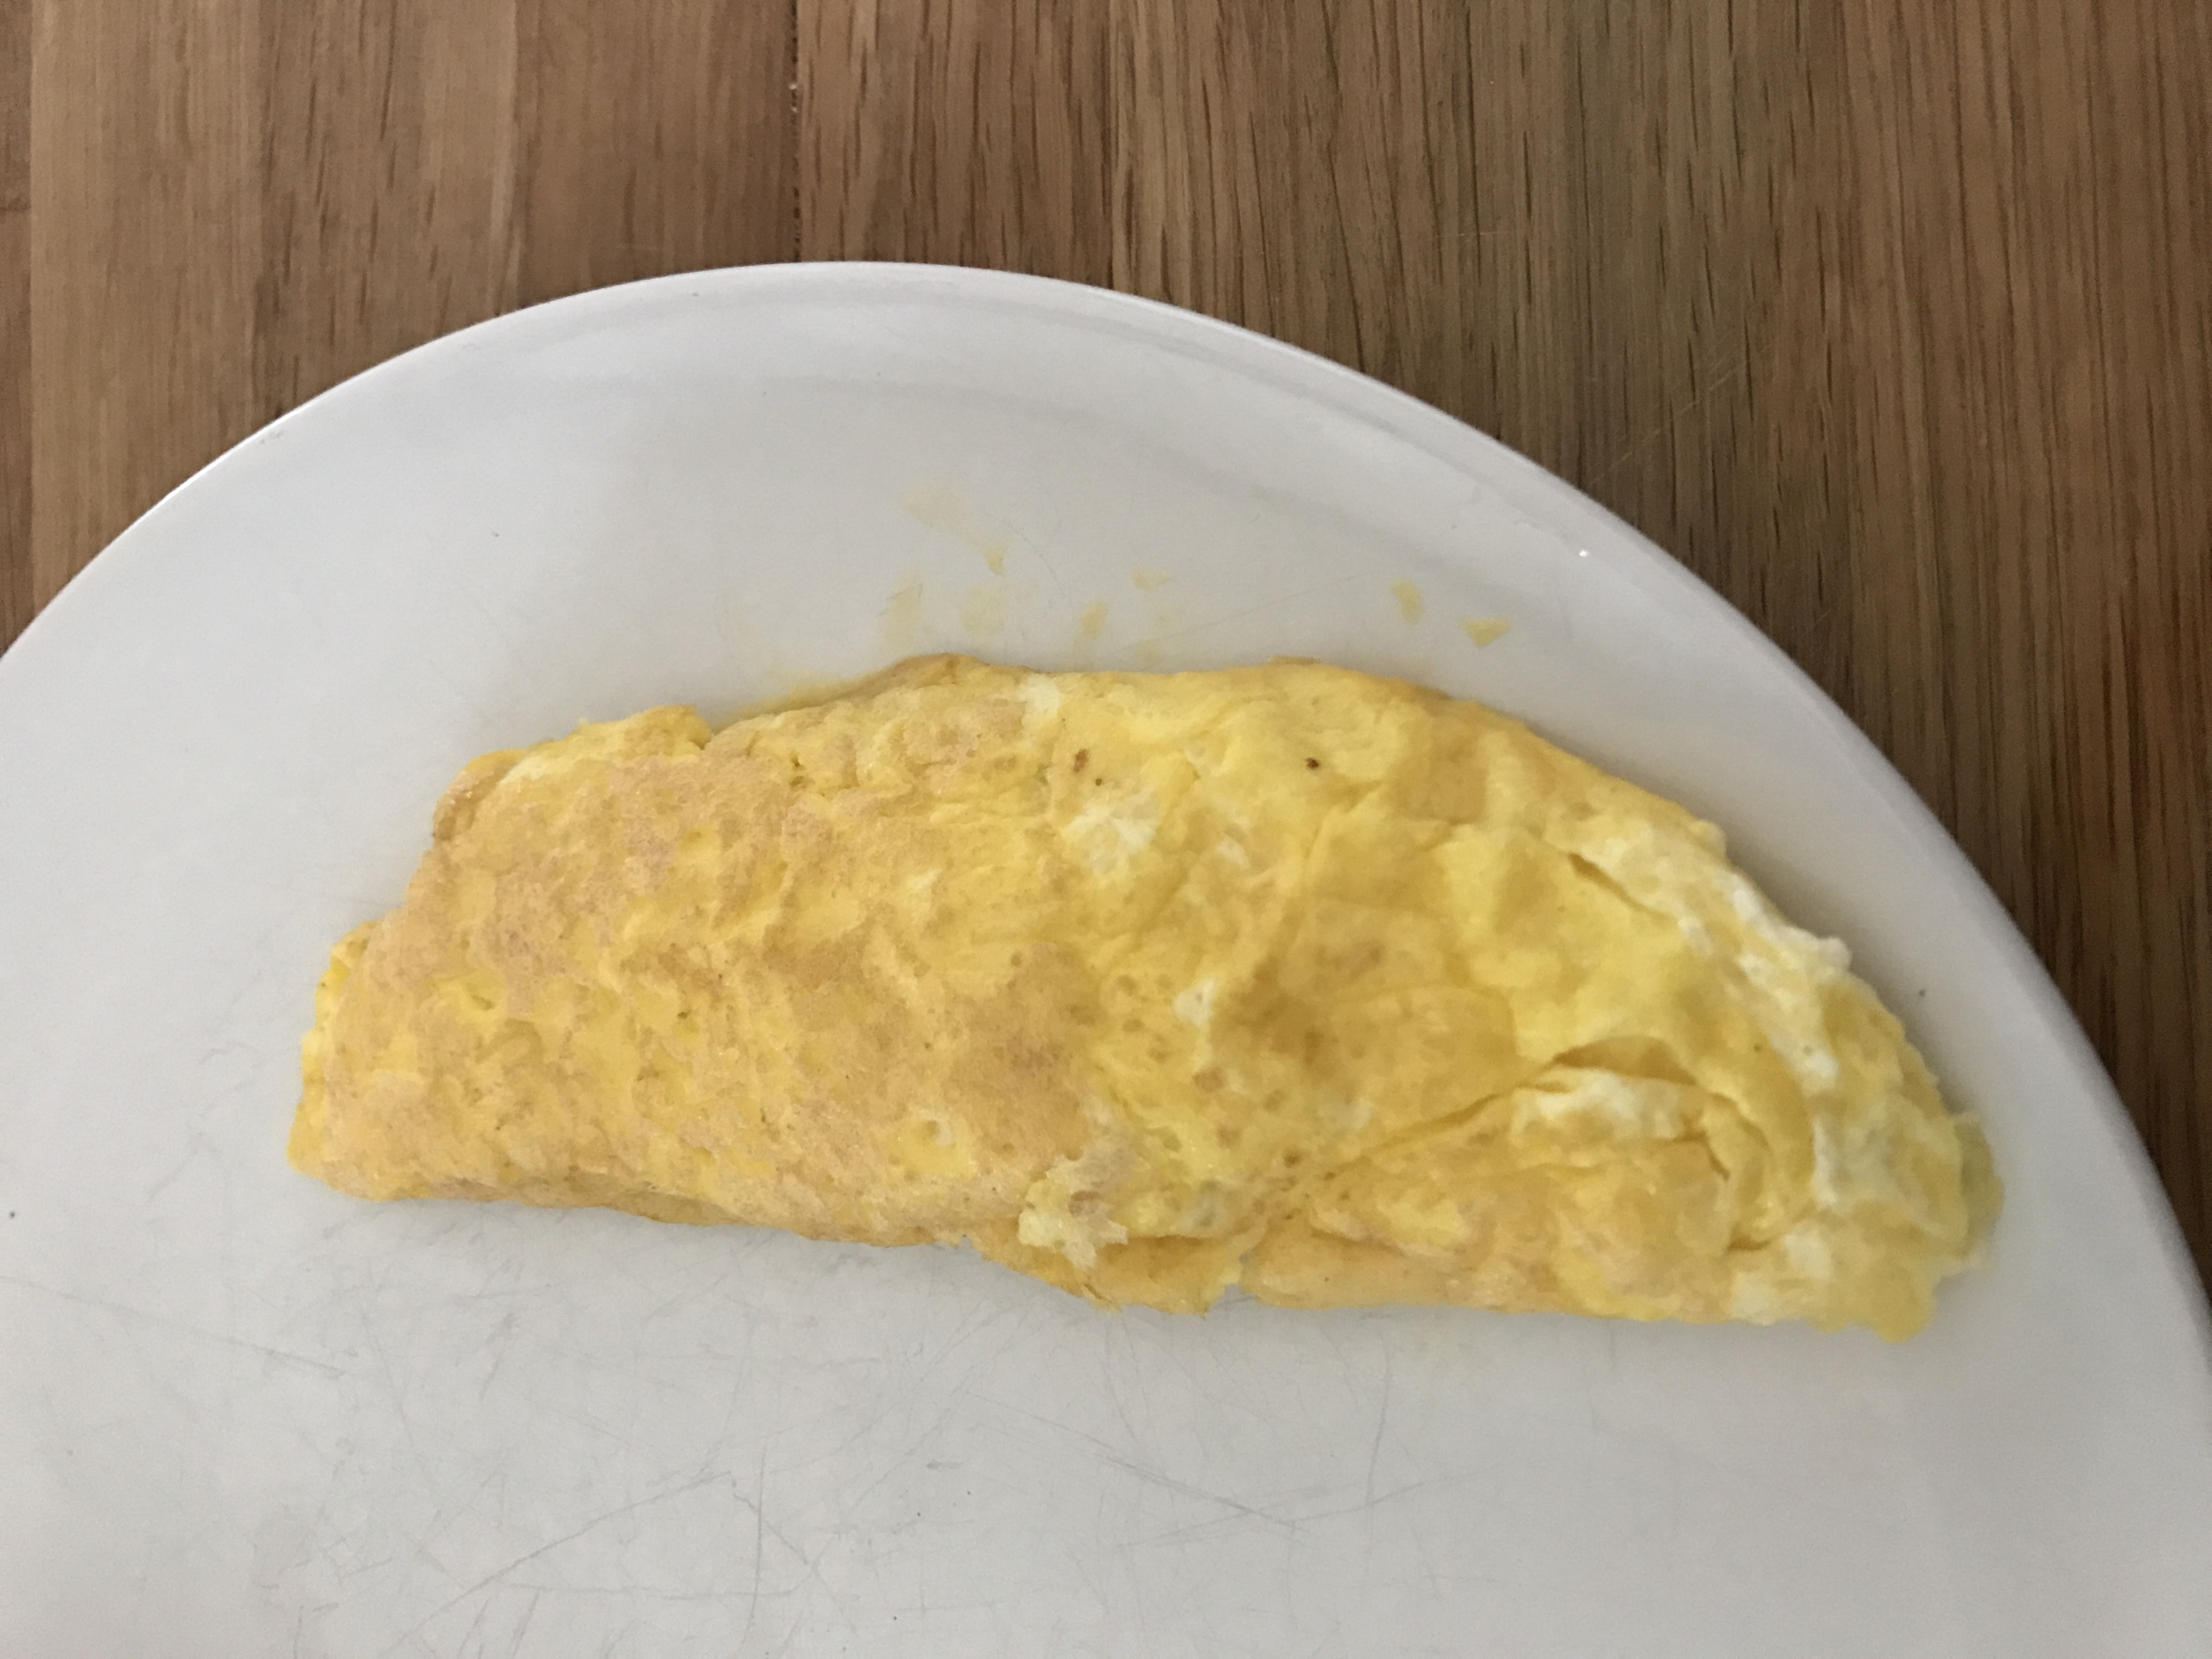 I'm still on a mission to perfect a french omelette. I'm getting close!